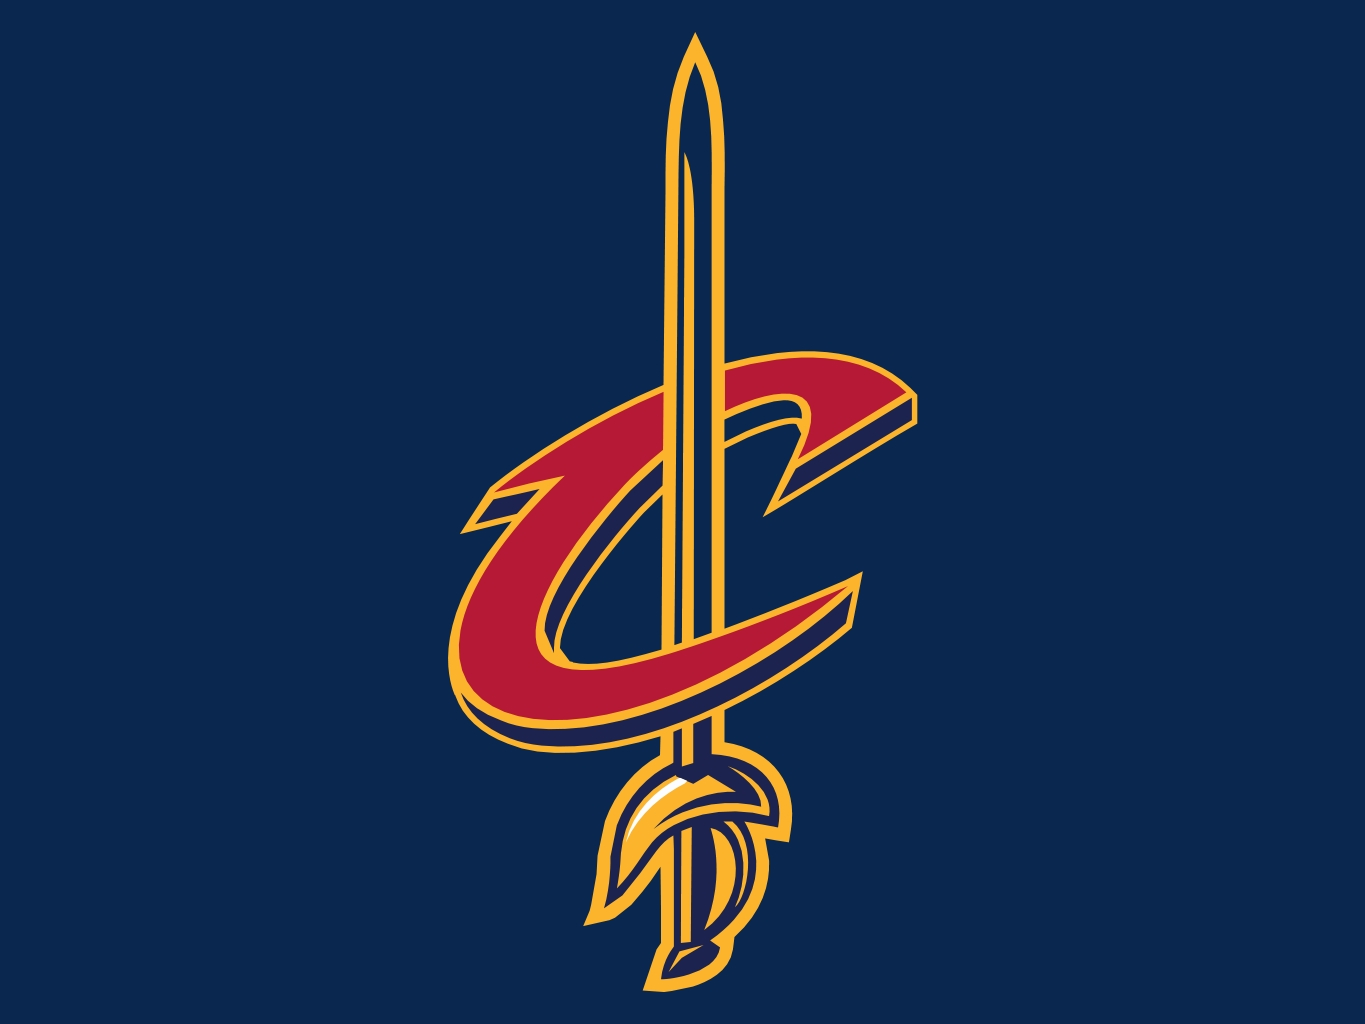 HQ Cleveland Cavaliers Wallpapers | File 158.84Kb